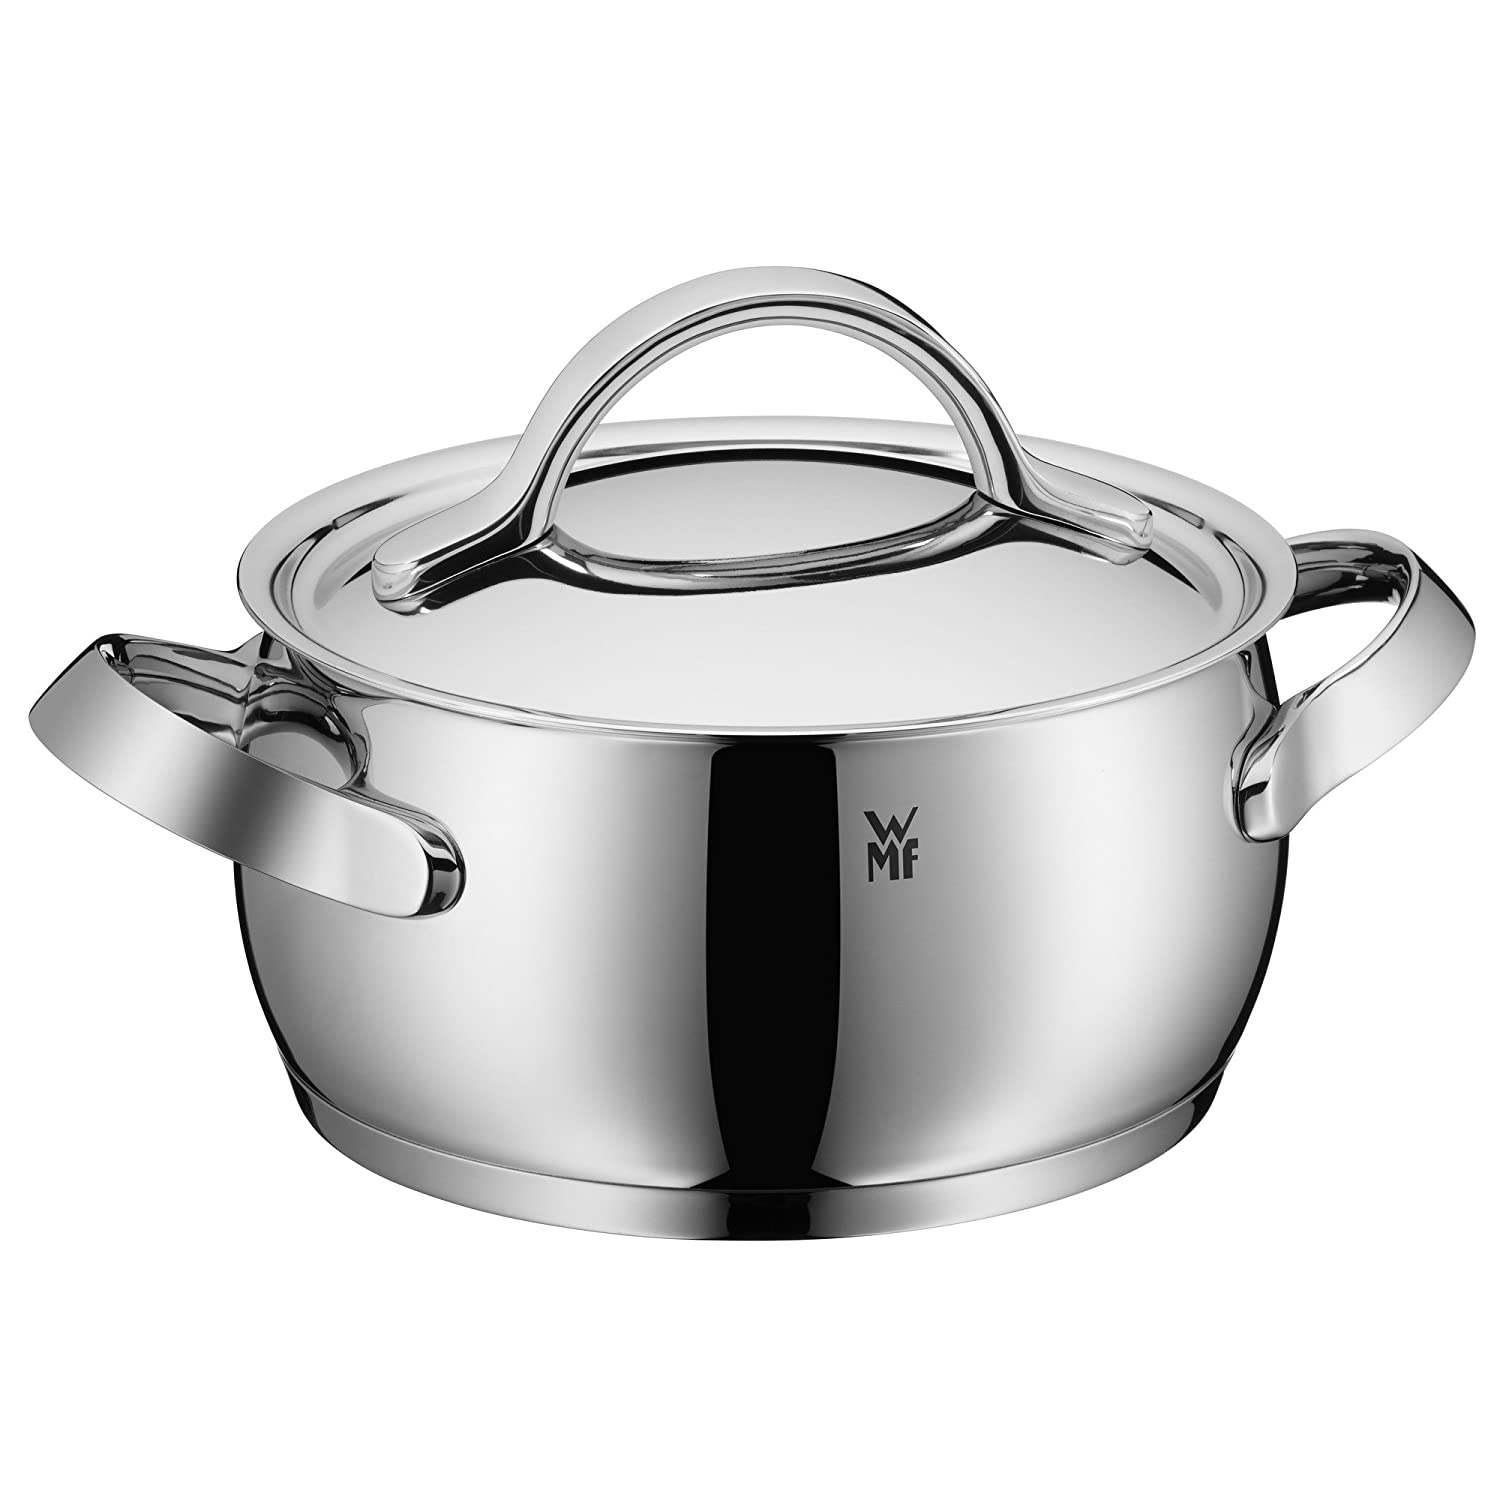 WMF Cookware Set 4 Piece Concento Inside Scaling Vapor Hole Made In Germany  Hollow Side Handles Metal Lid Cromargan Stainless Steel Brushed Suitable  For All ...